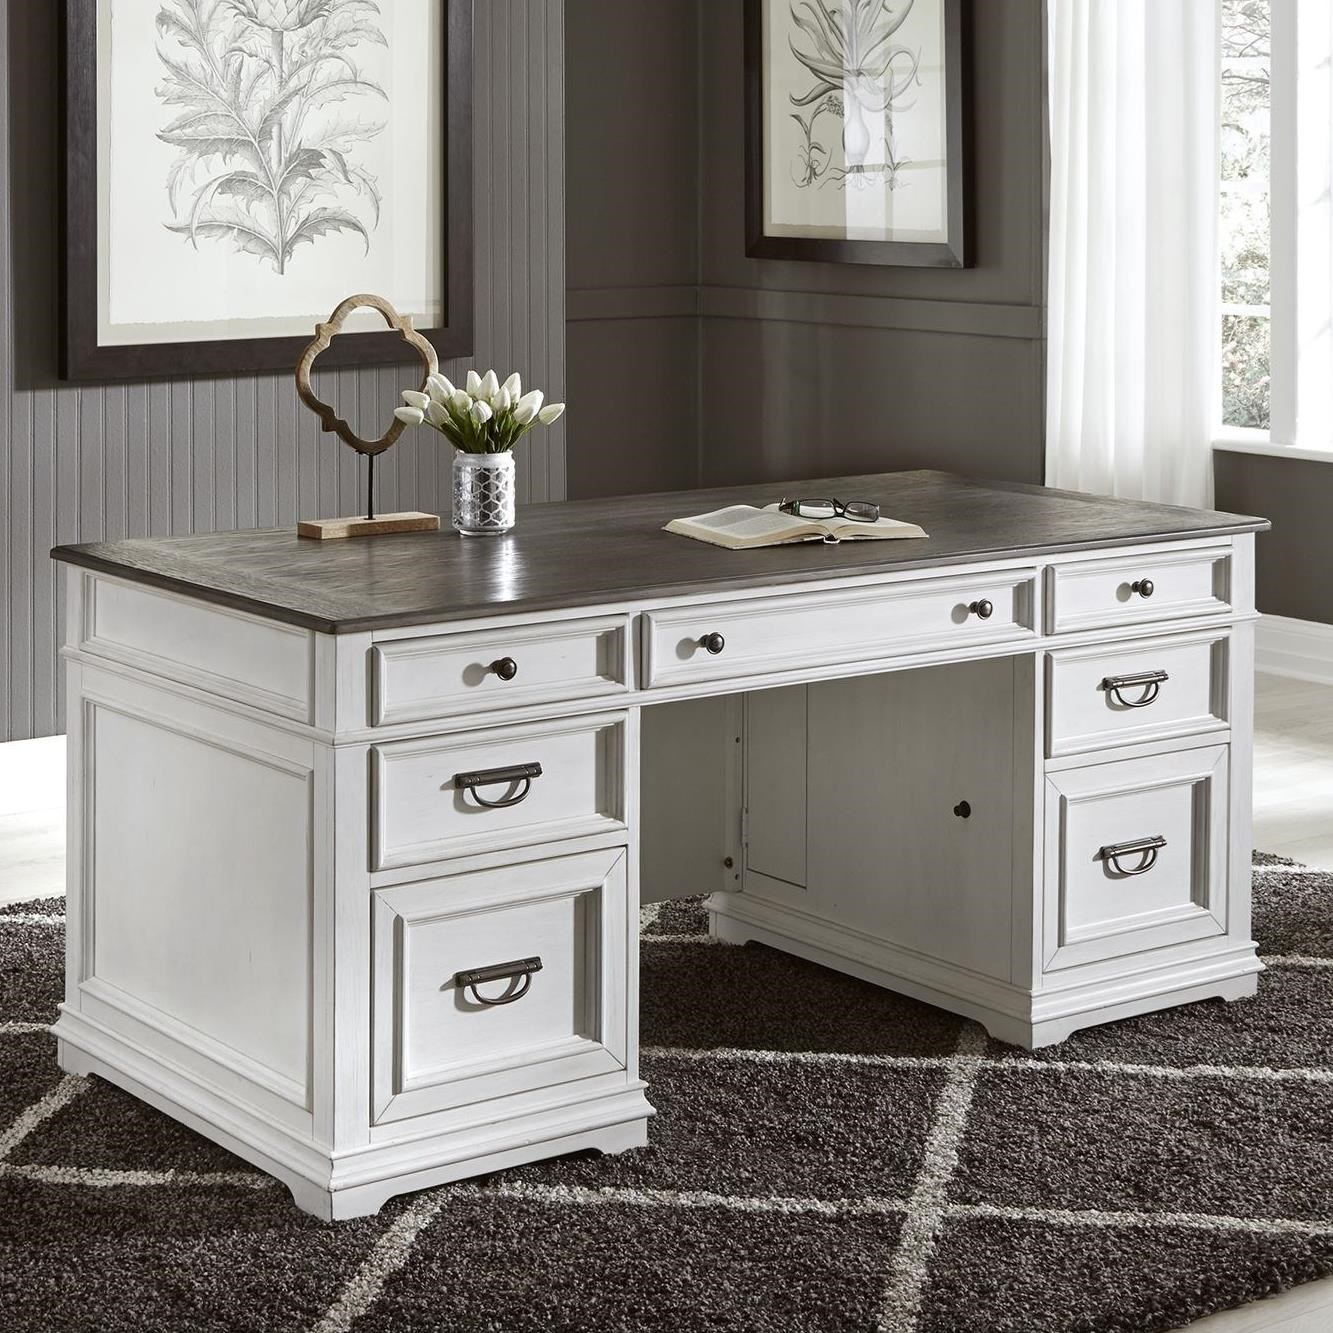 Allyson Park Executive Desk by Freedom Furniture at Ruby Gordon Home